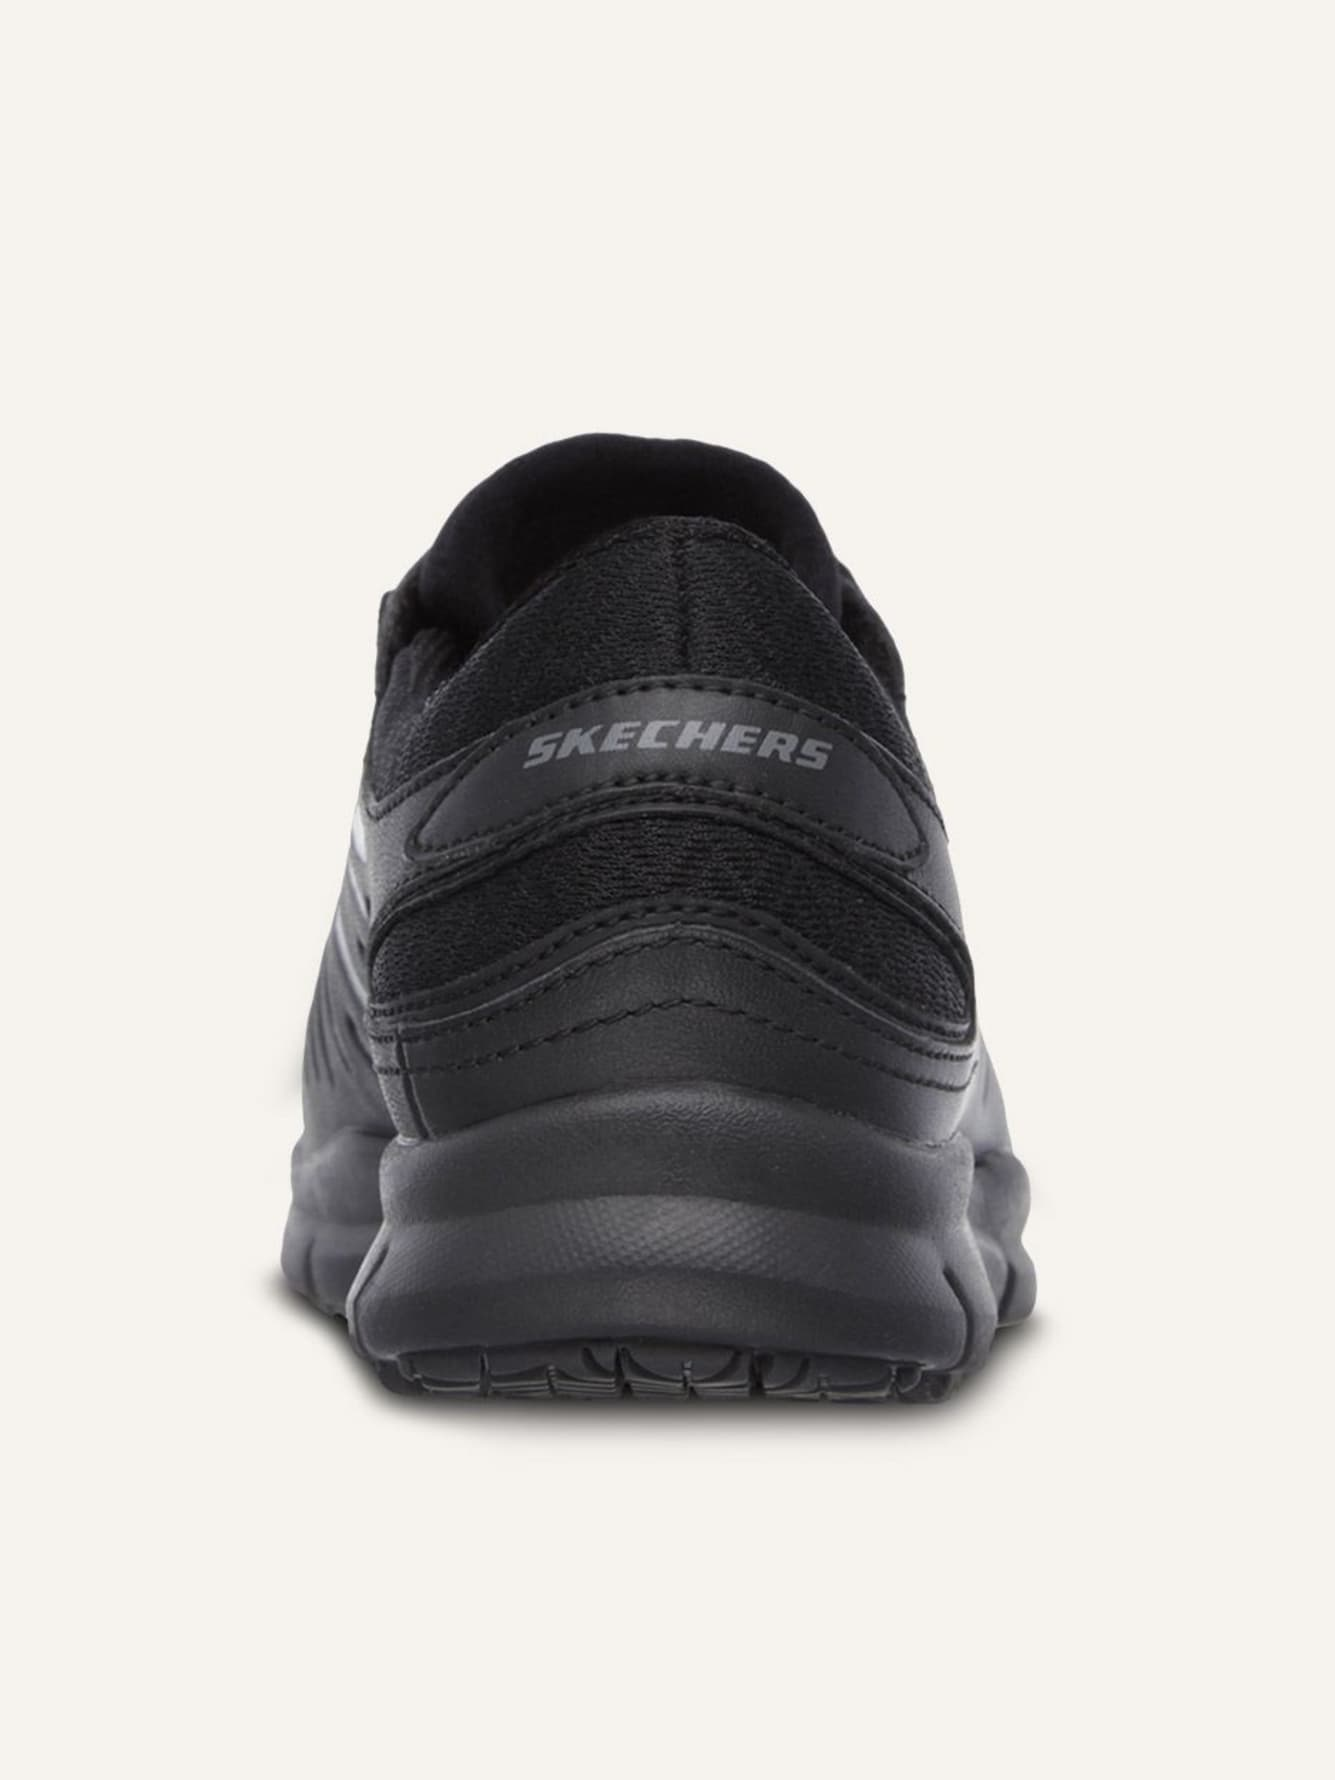 Skechers Relaxed Fit, Eldred SR - Wide Width Work Sneakers